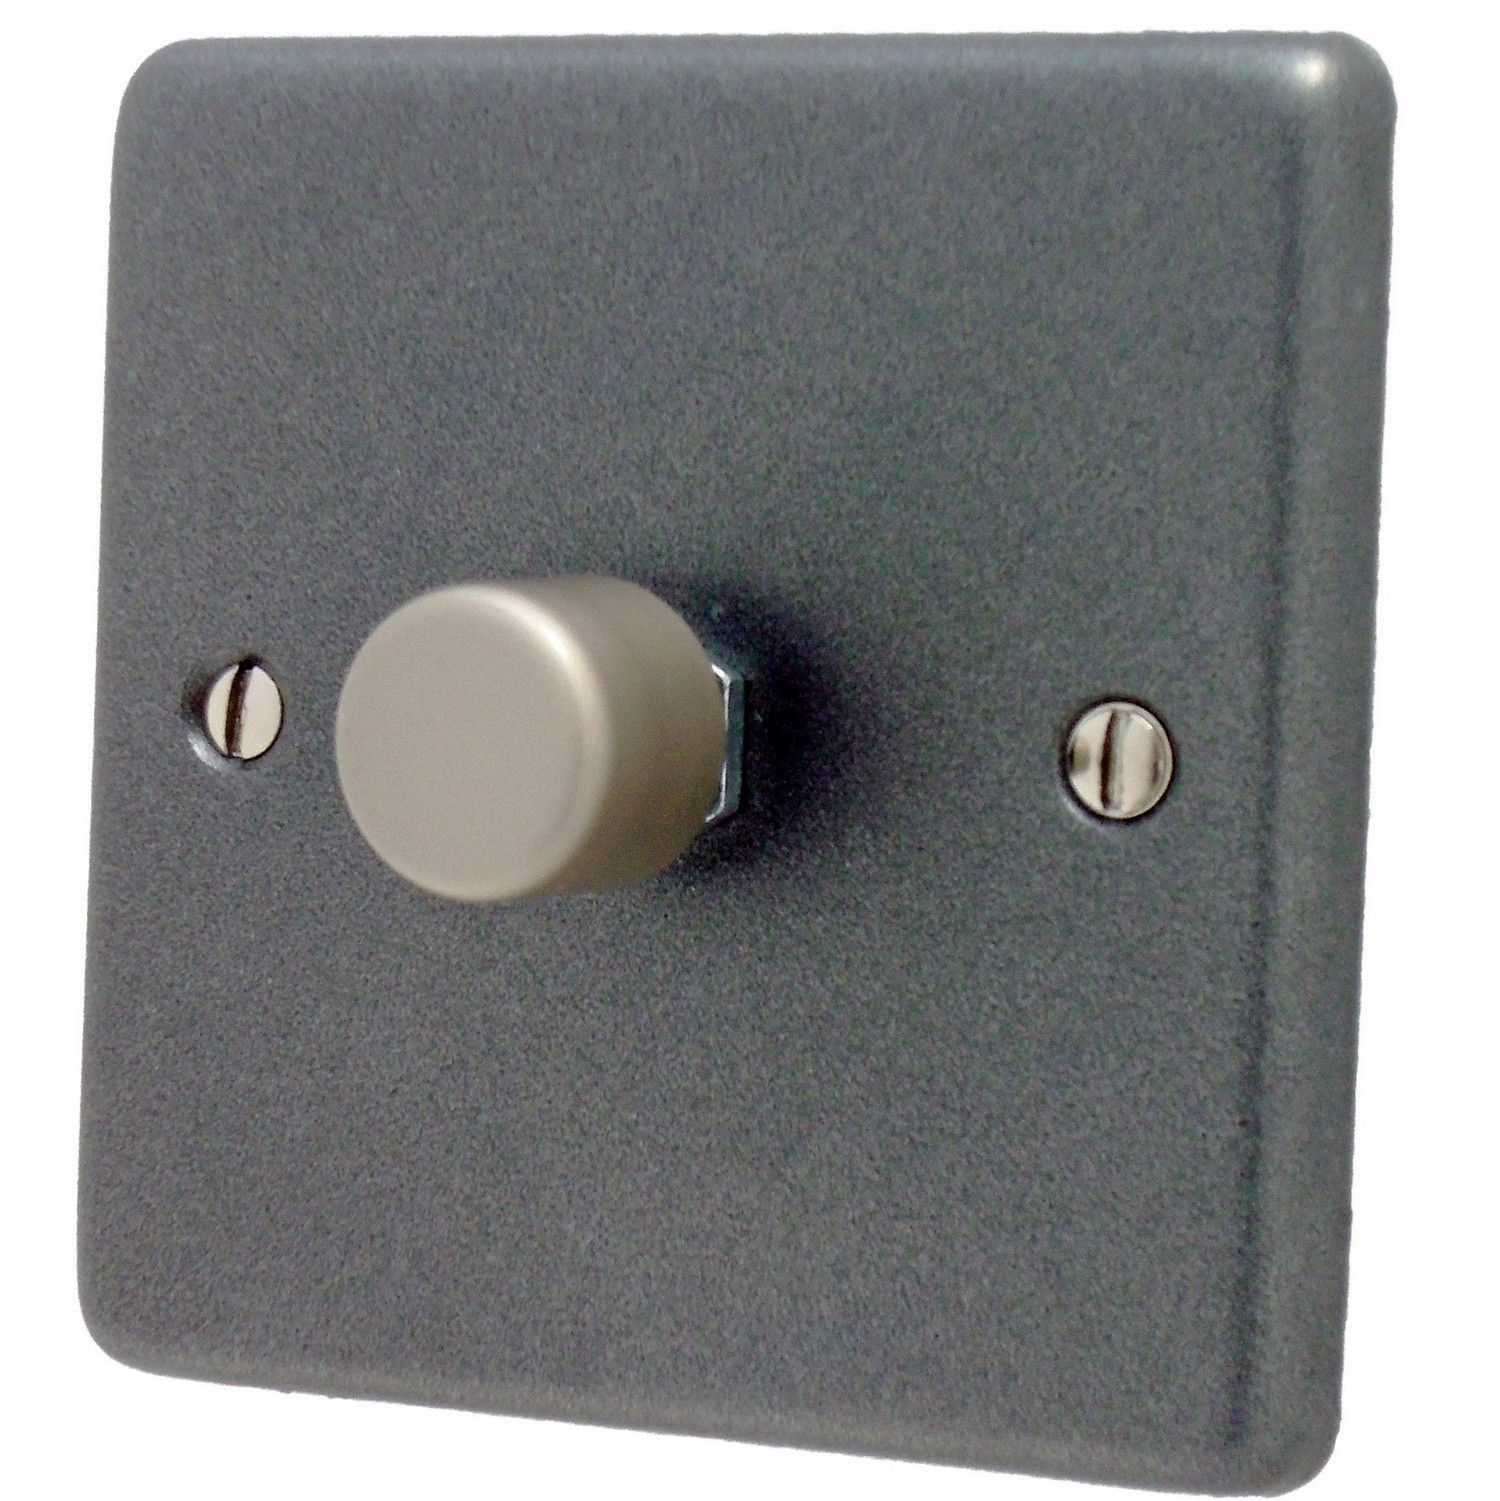 Gh Cp11 Standard Plate Pewter 1 Gang Or 2 Way 40 400w Dimmer Switch Phono Box